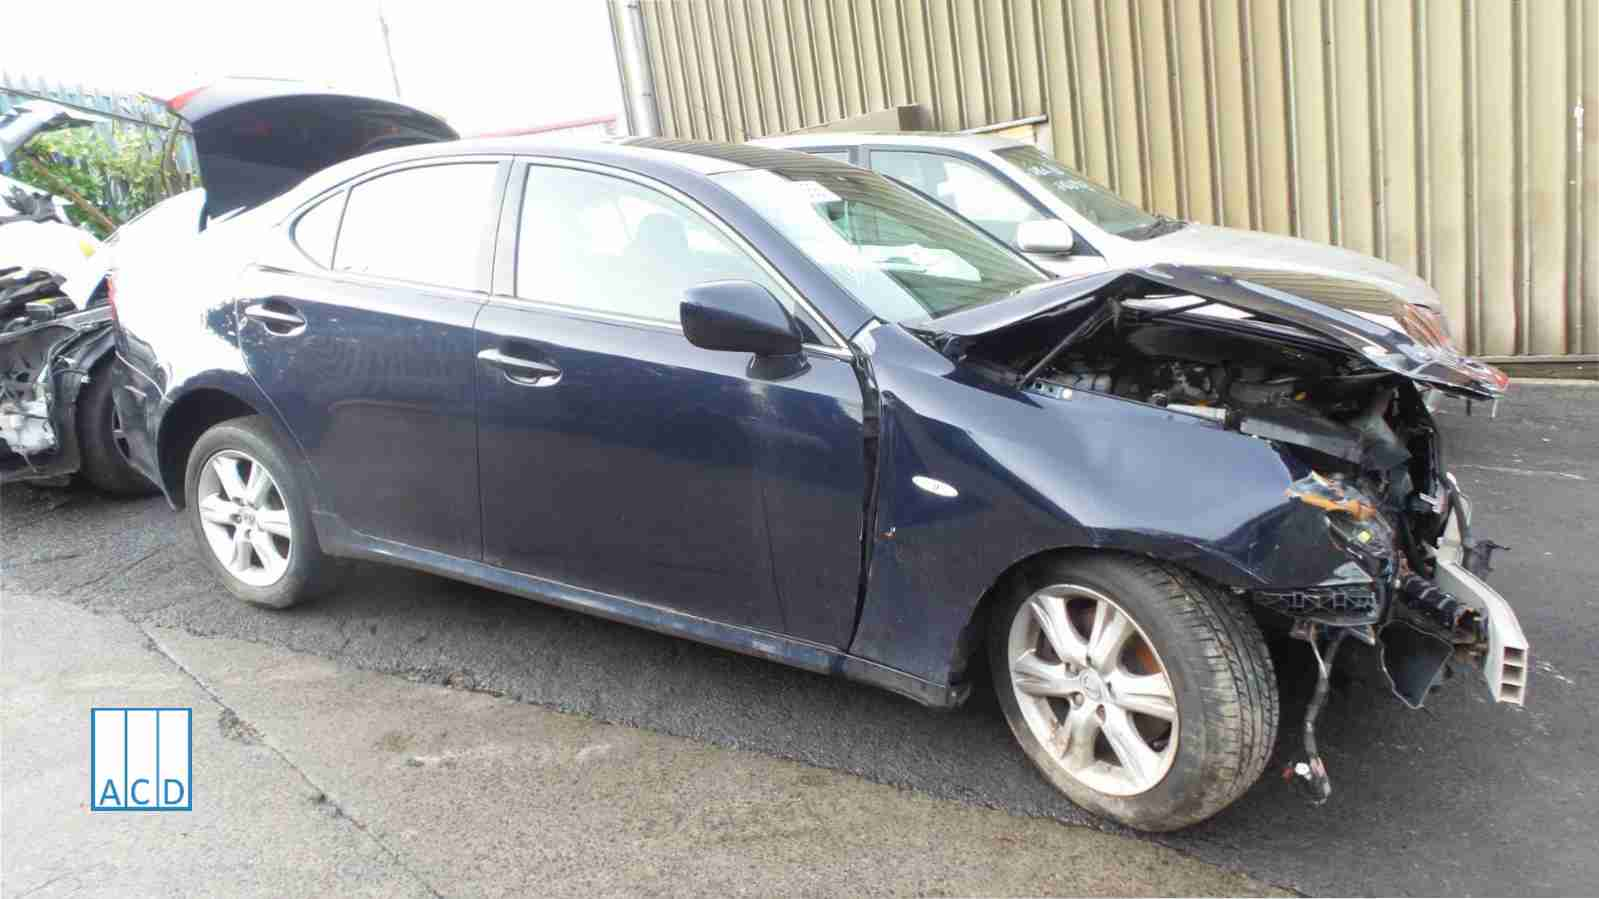 Lexus IS 220D 2.0L Diesel 6-Speed manual used parts